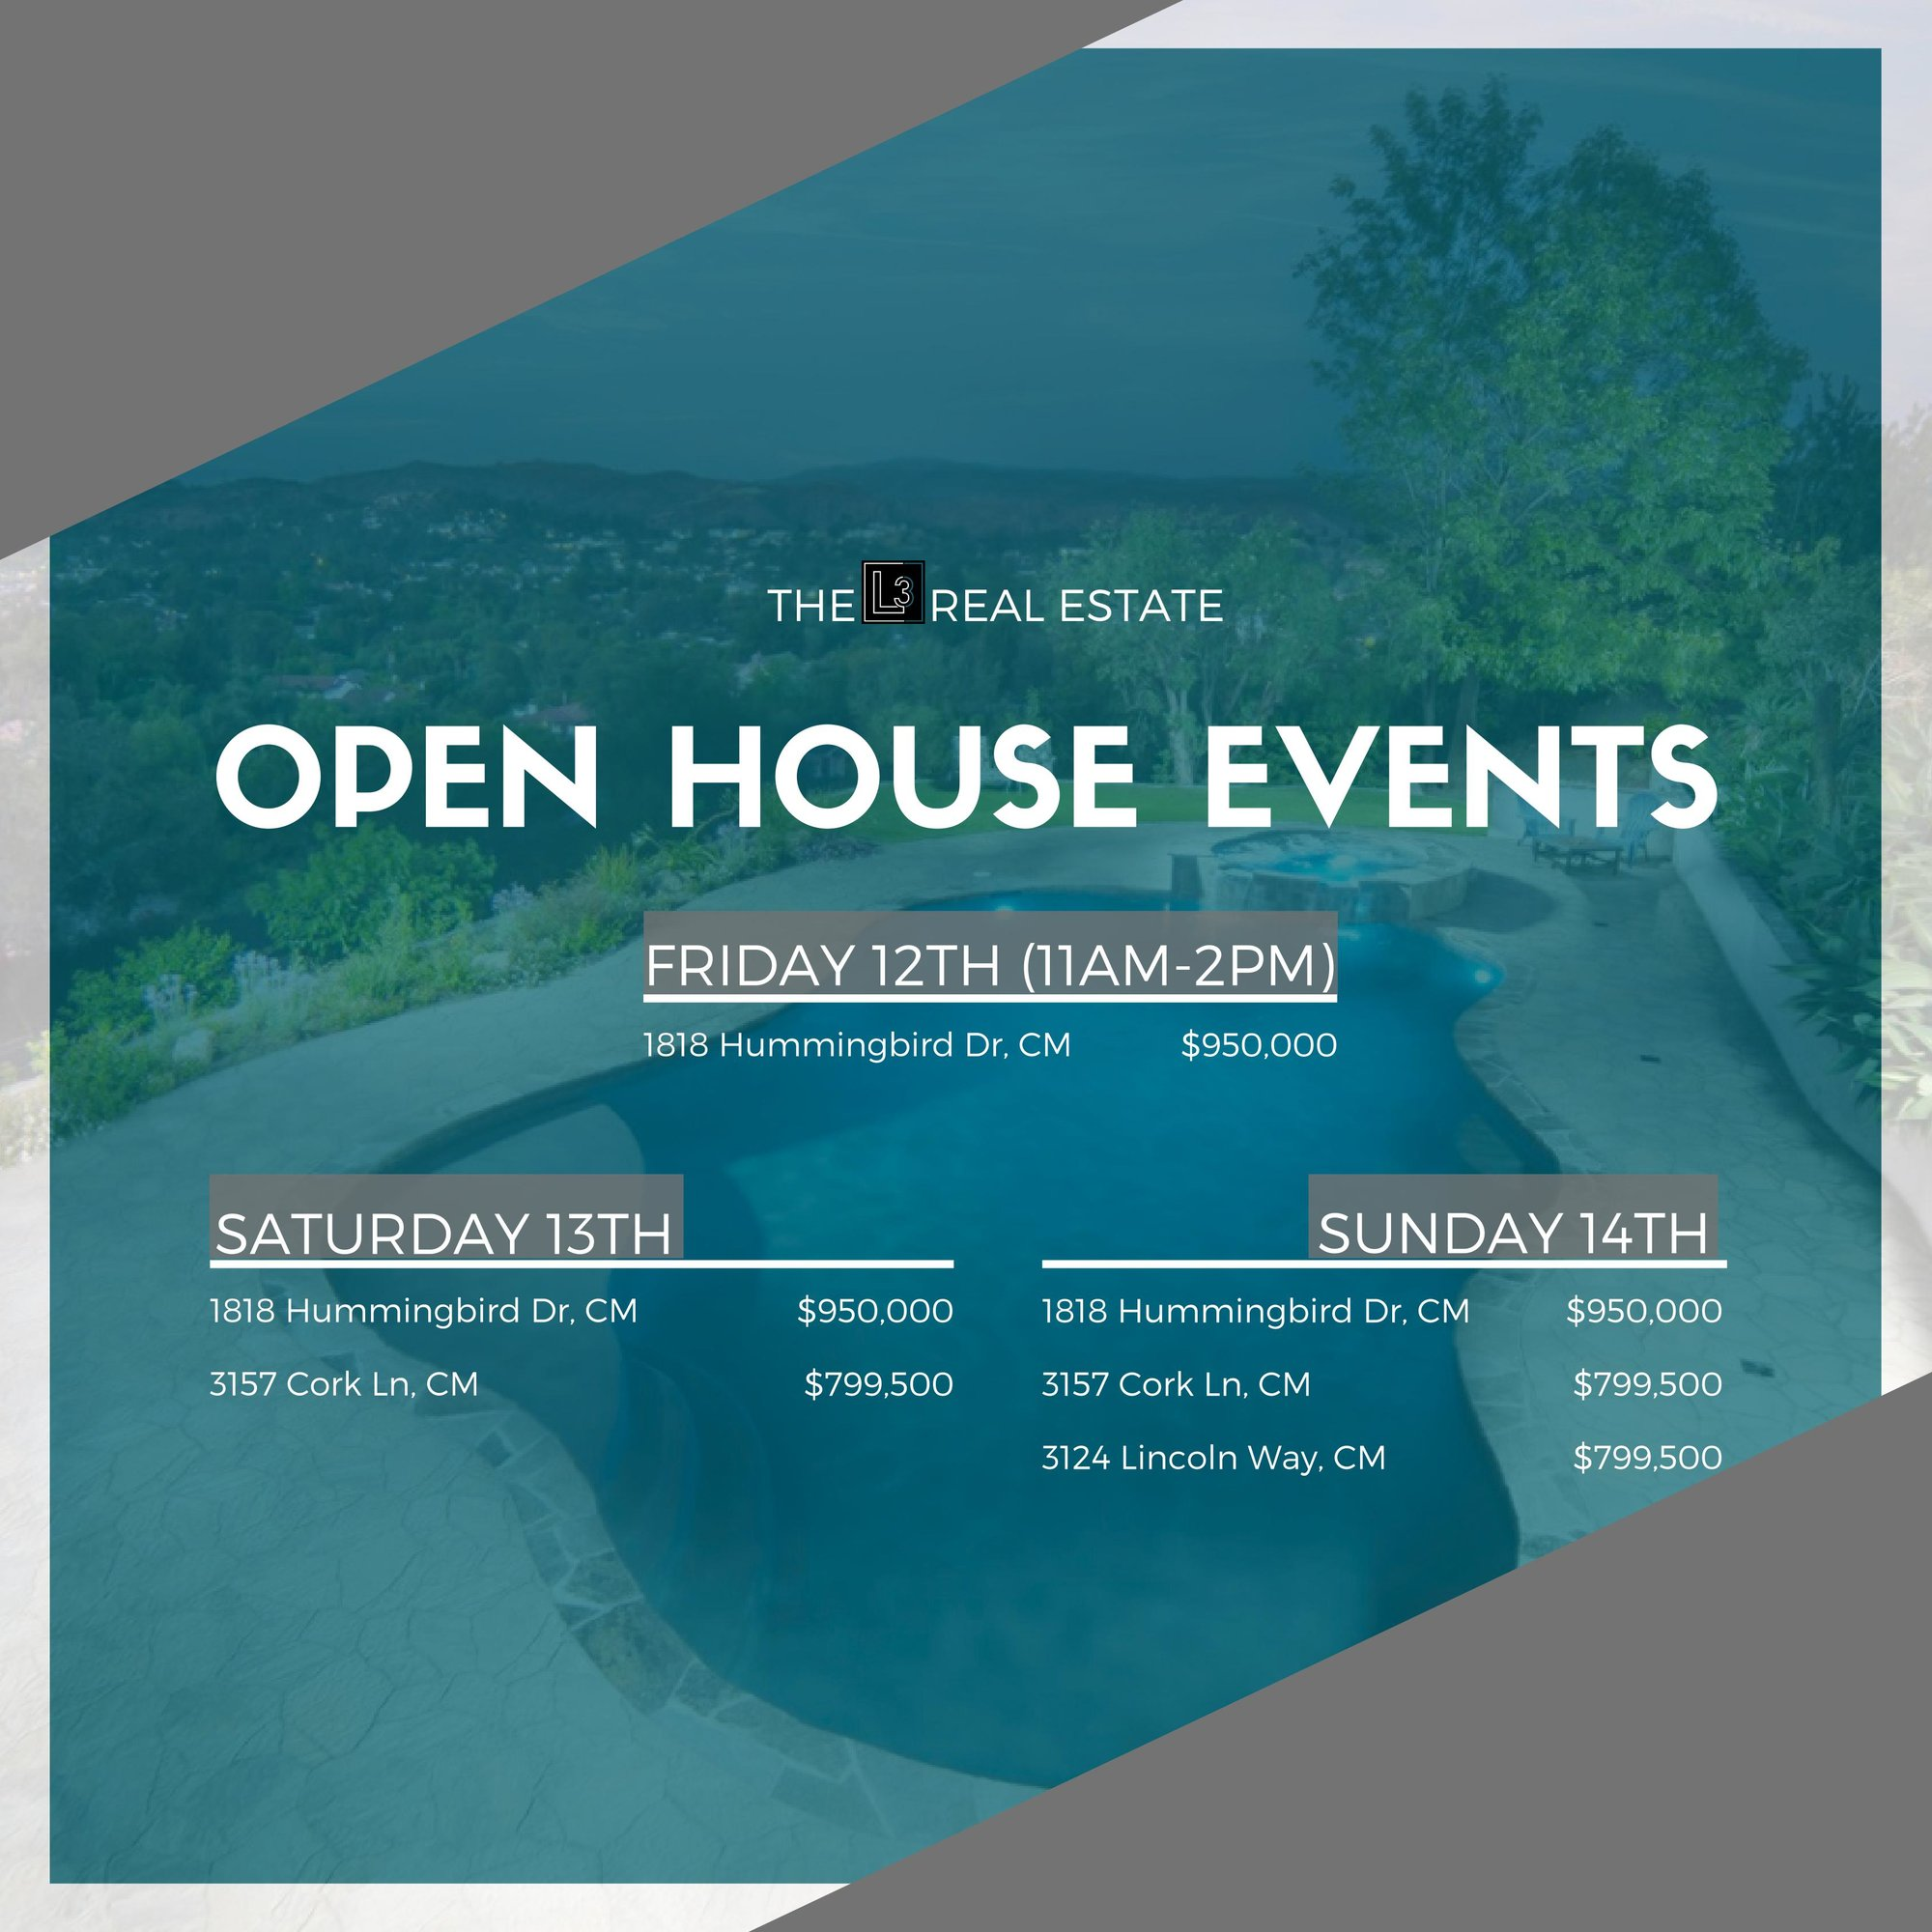 Open House Events in Costa Mesa